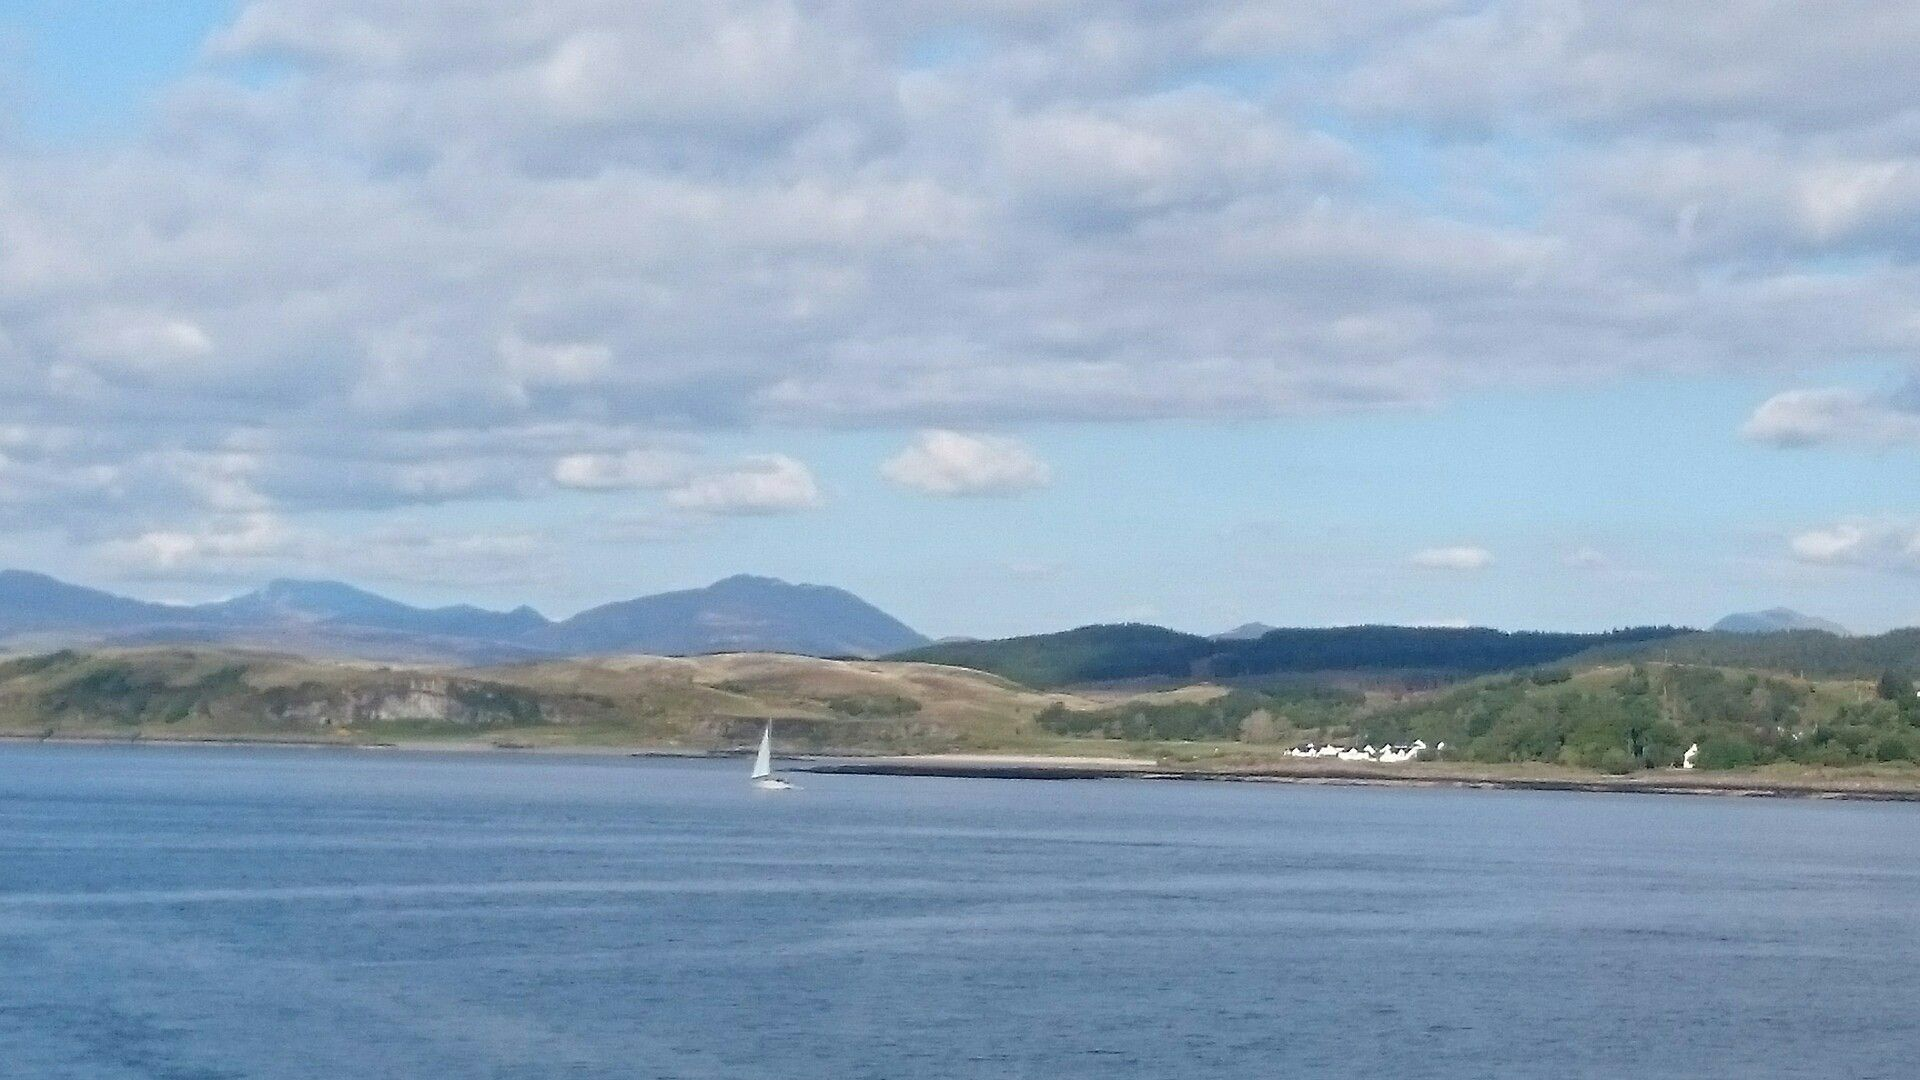 Ganavan Sands from Mull ferry